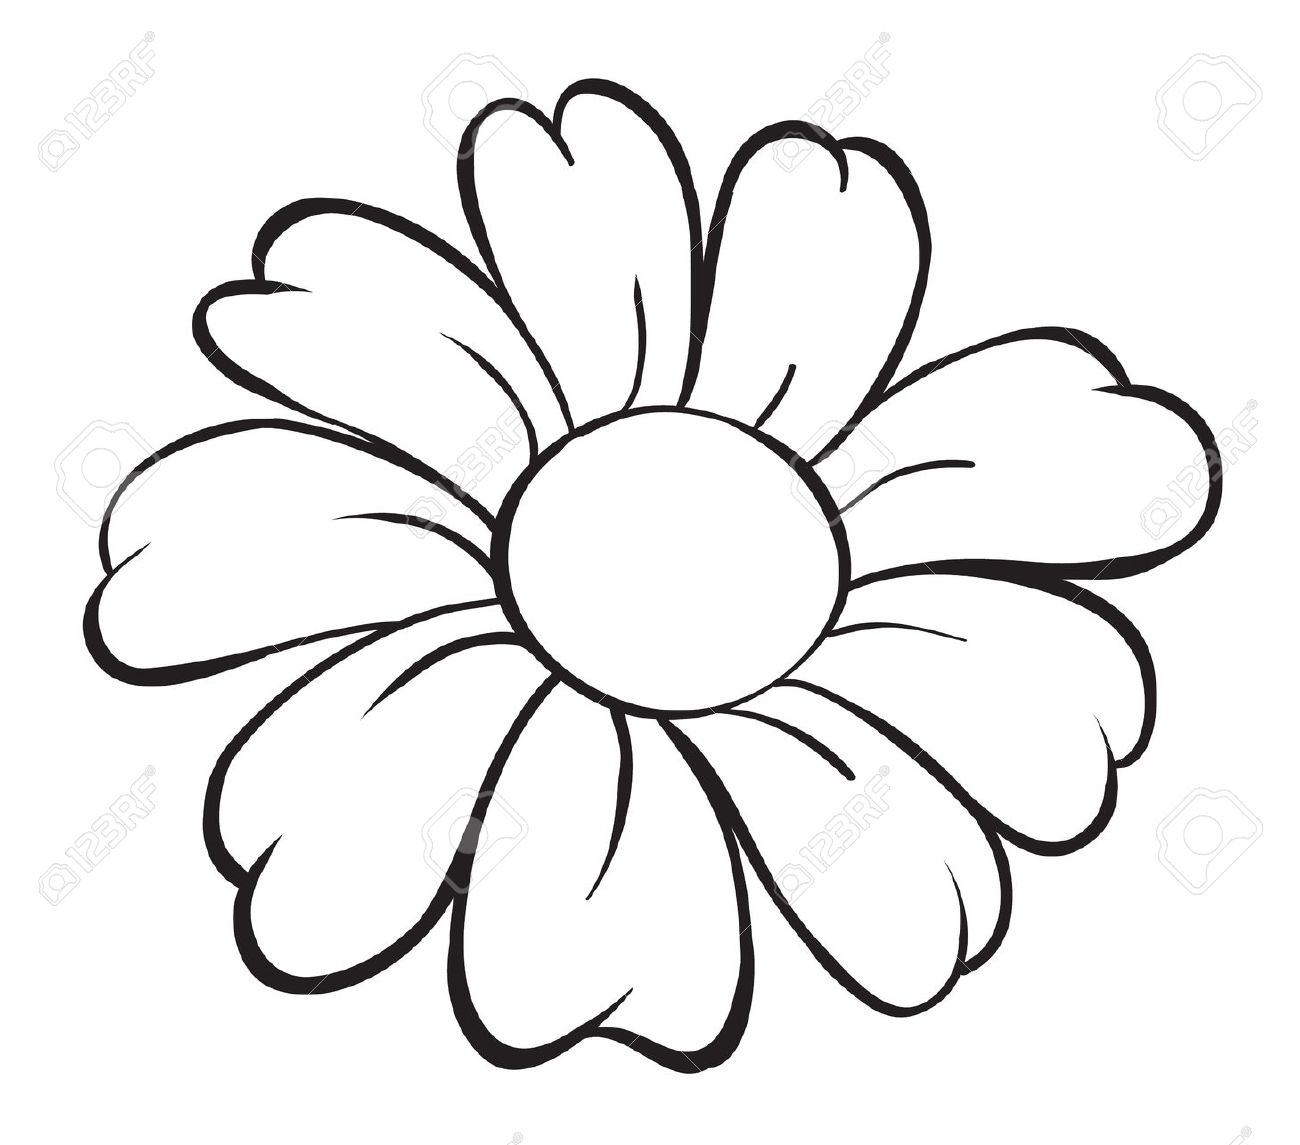 Black To Black Flowers 4: Cartoon Flower Outline 20 Free Cliparts